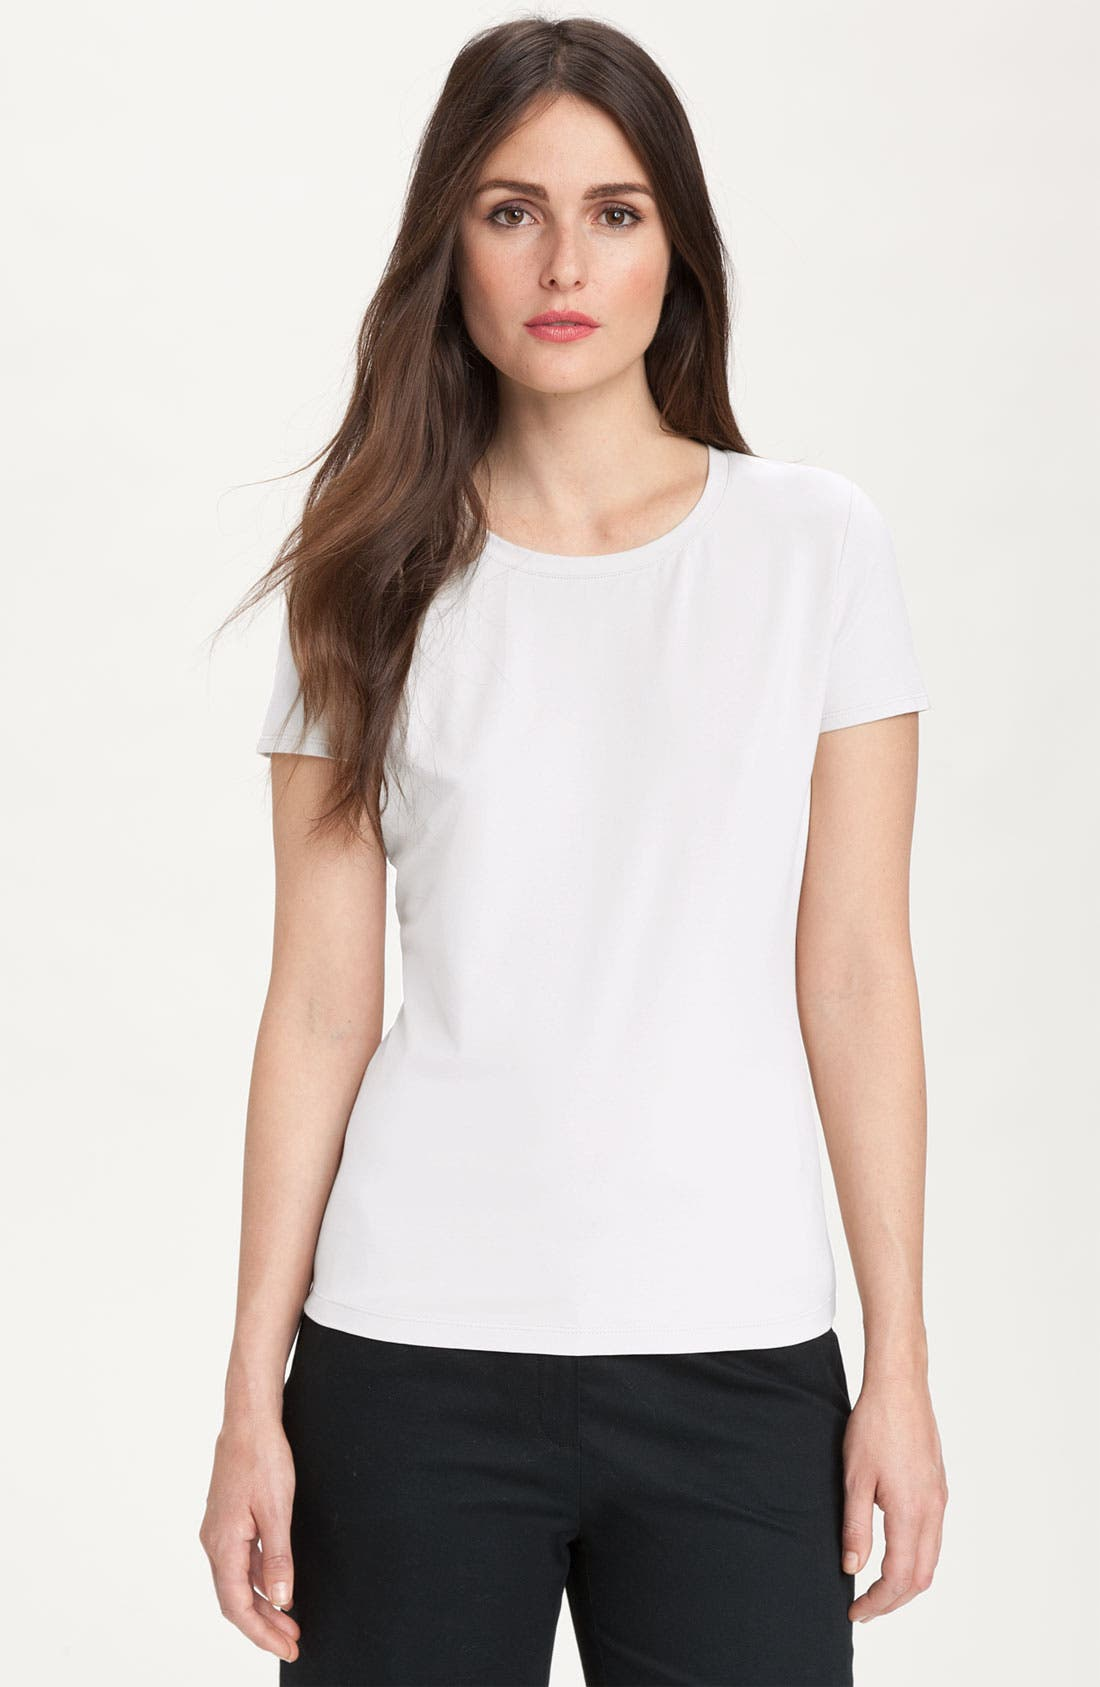 Alternate Image 1 Selected - Lafayette 148 New York 'City' Stretch Jersey Tee